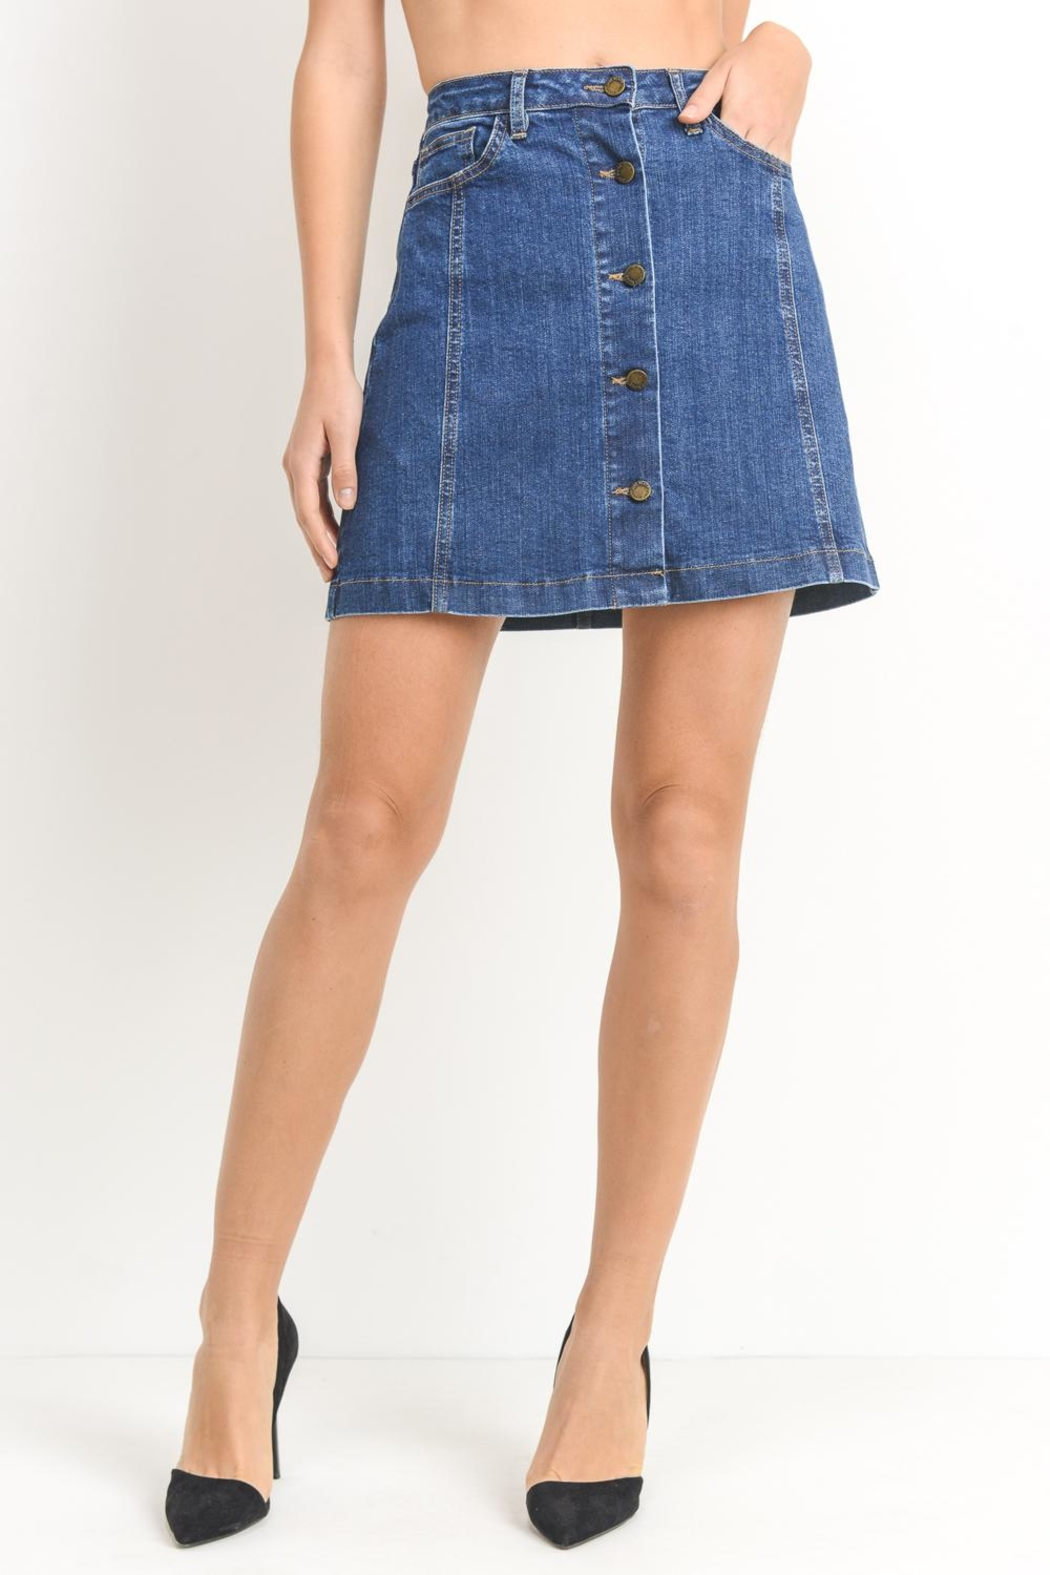 Just Black Denim Button-Front Denim Skirt - Main Image